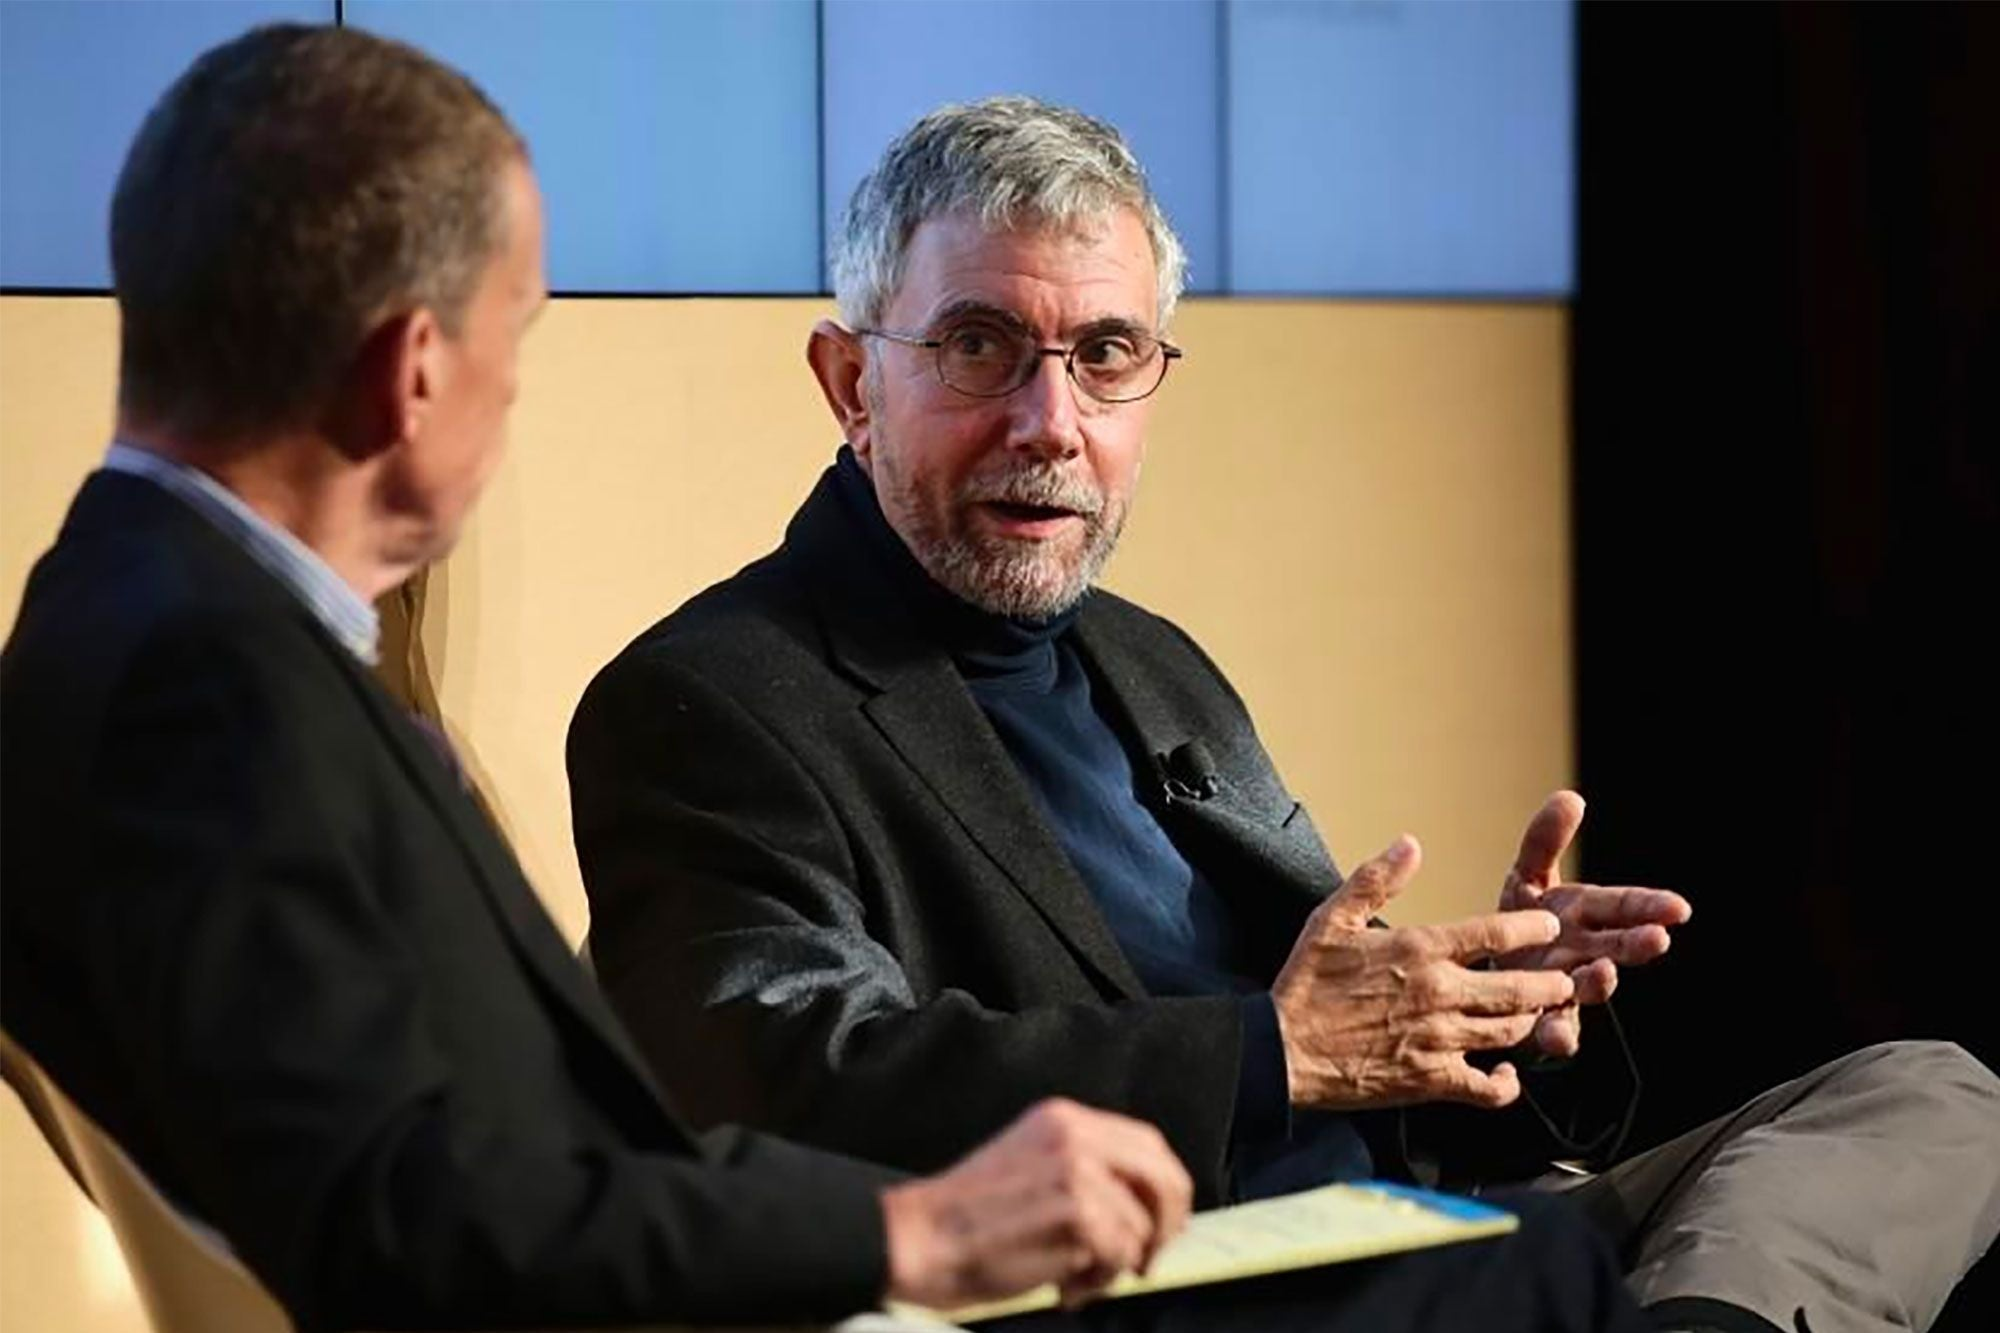 Paul Krugman Warns of Fiscal Time Bomb If Relief Is Insufficient